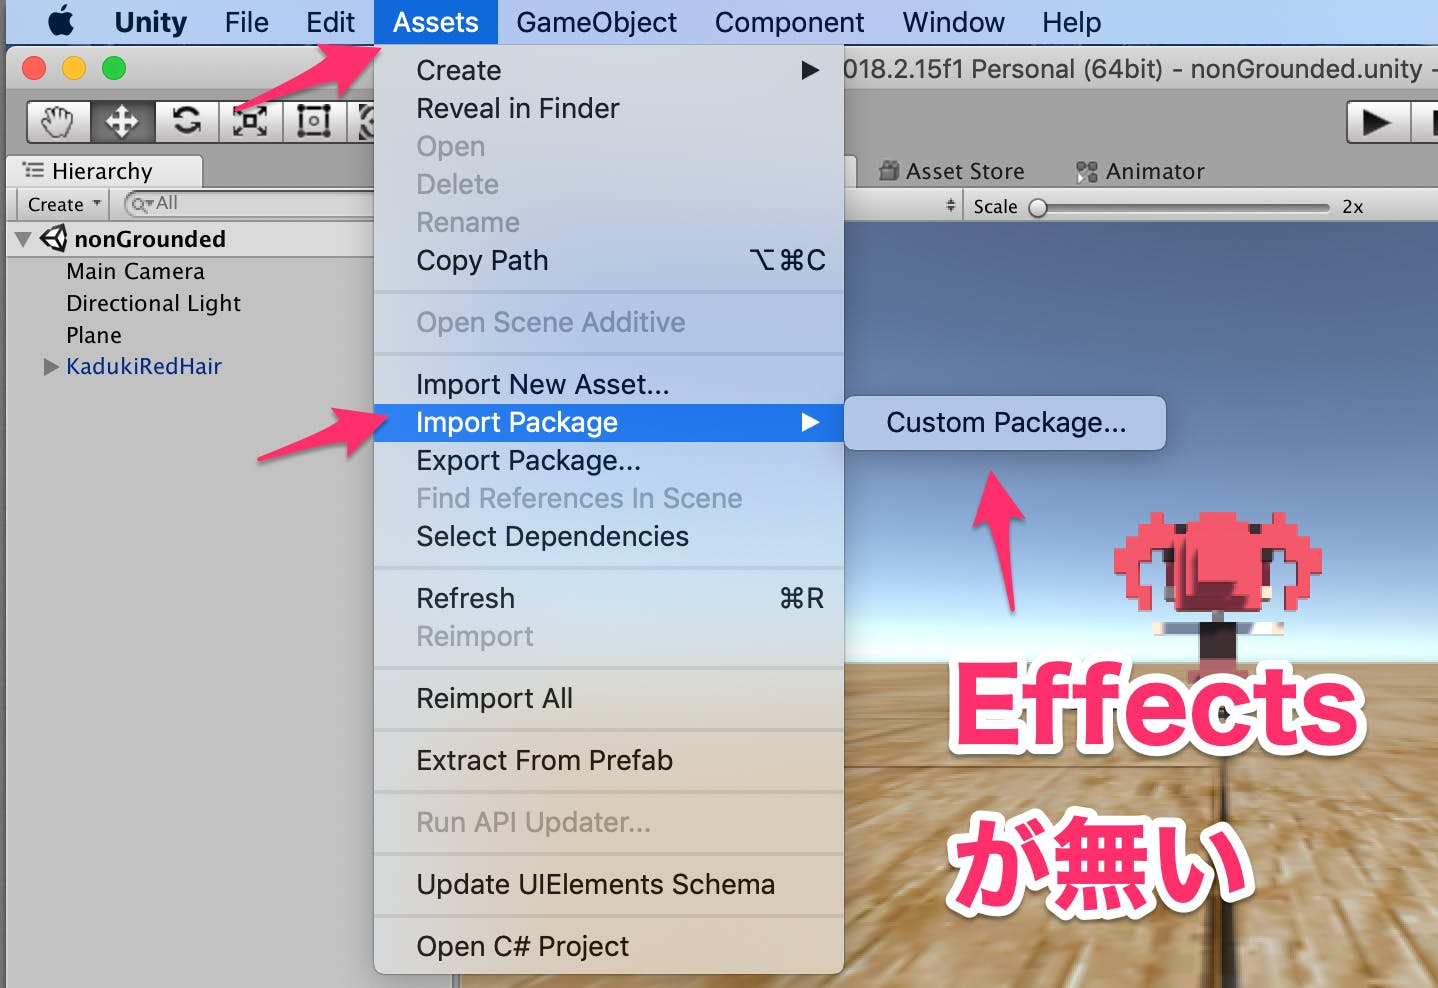 Unity】Assetsの「Import Package」に「Effects」(StandardAssets)がない